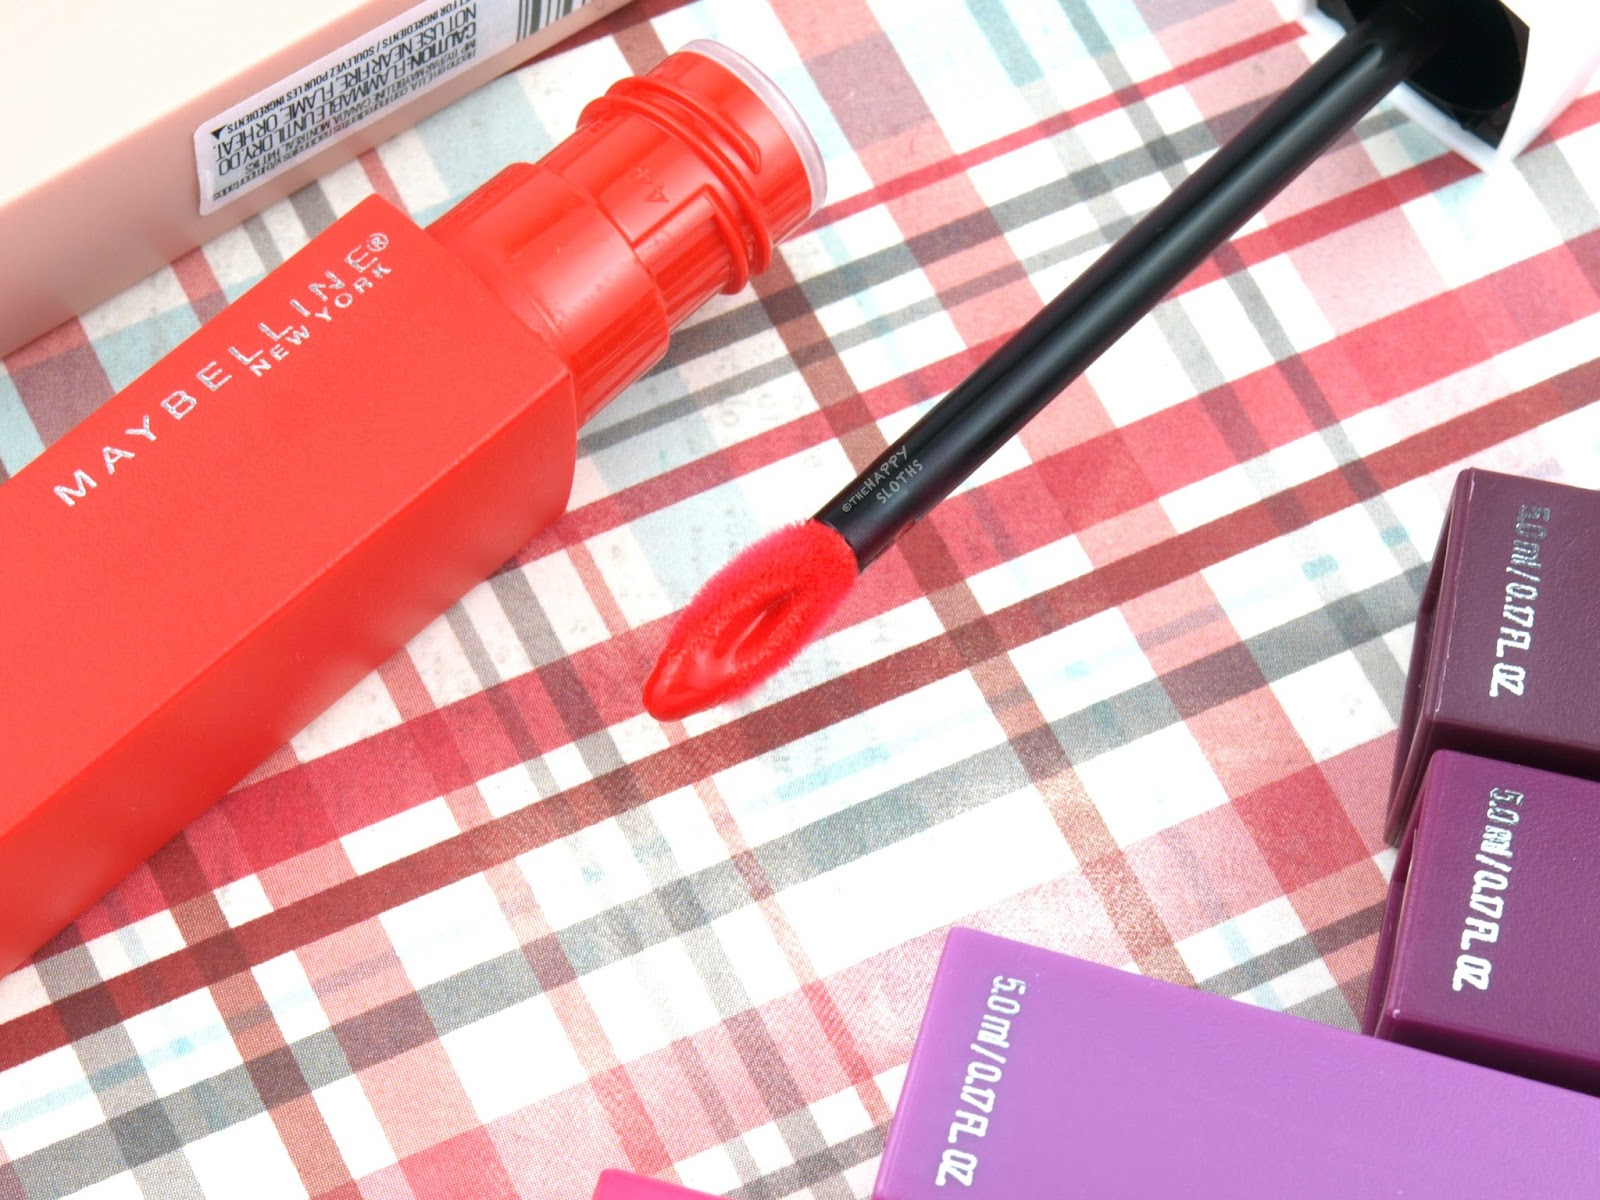 Maybelline Superstay Matte Ink Liquid Lipstick: Review and Swatches